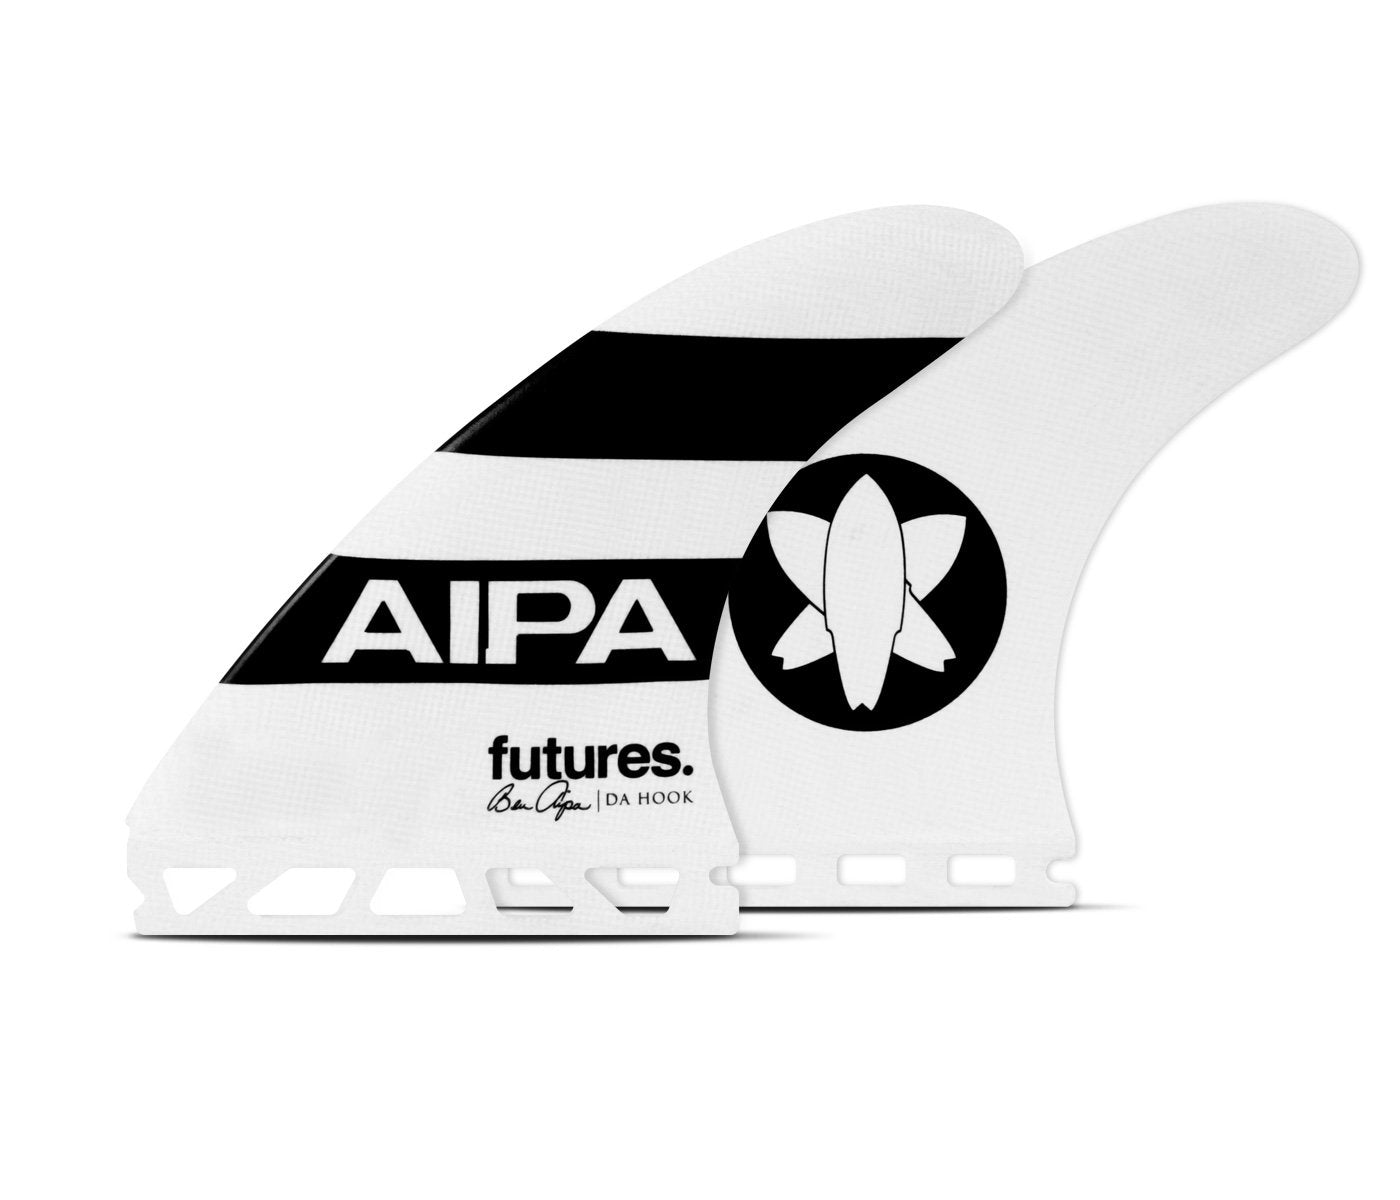 Futures Ben Aipa | Da Hook